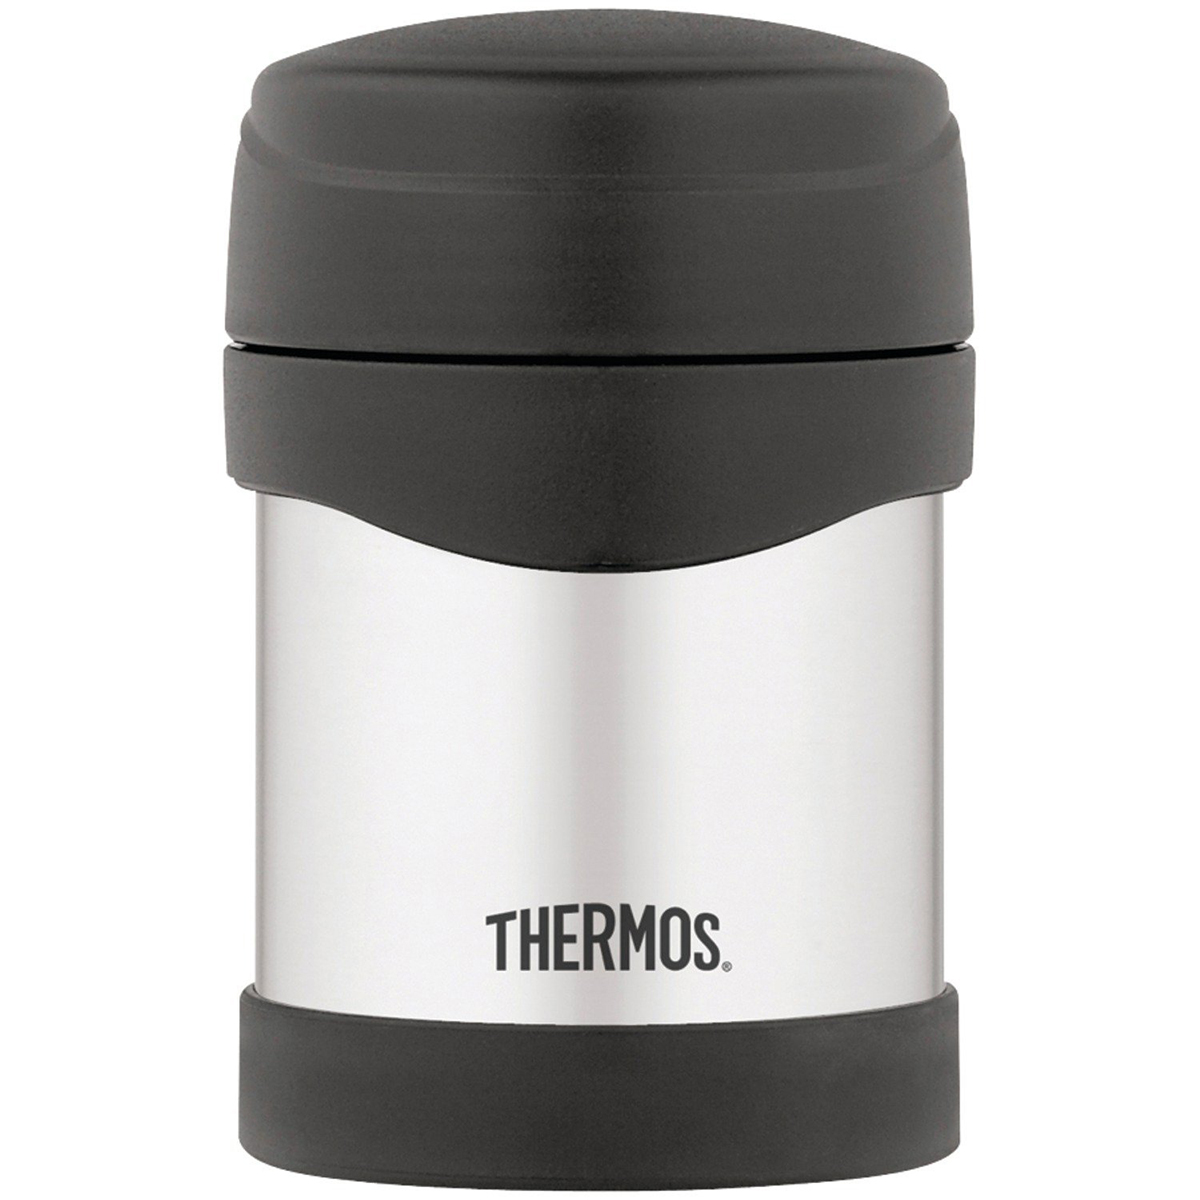 Cayman Kitchen 16 OZ Thermos Insulated Stainless Steel Food Jar Flask